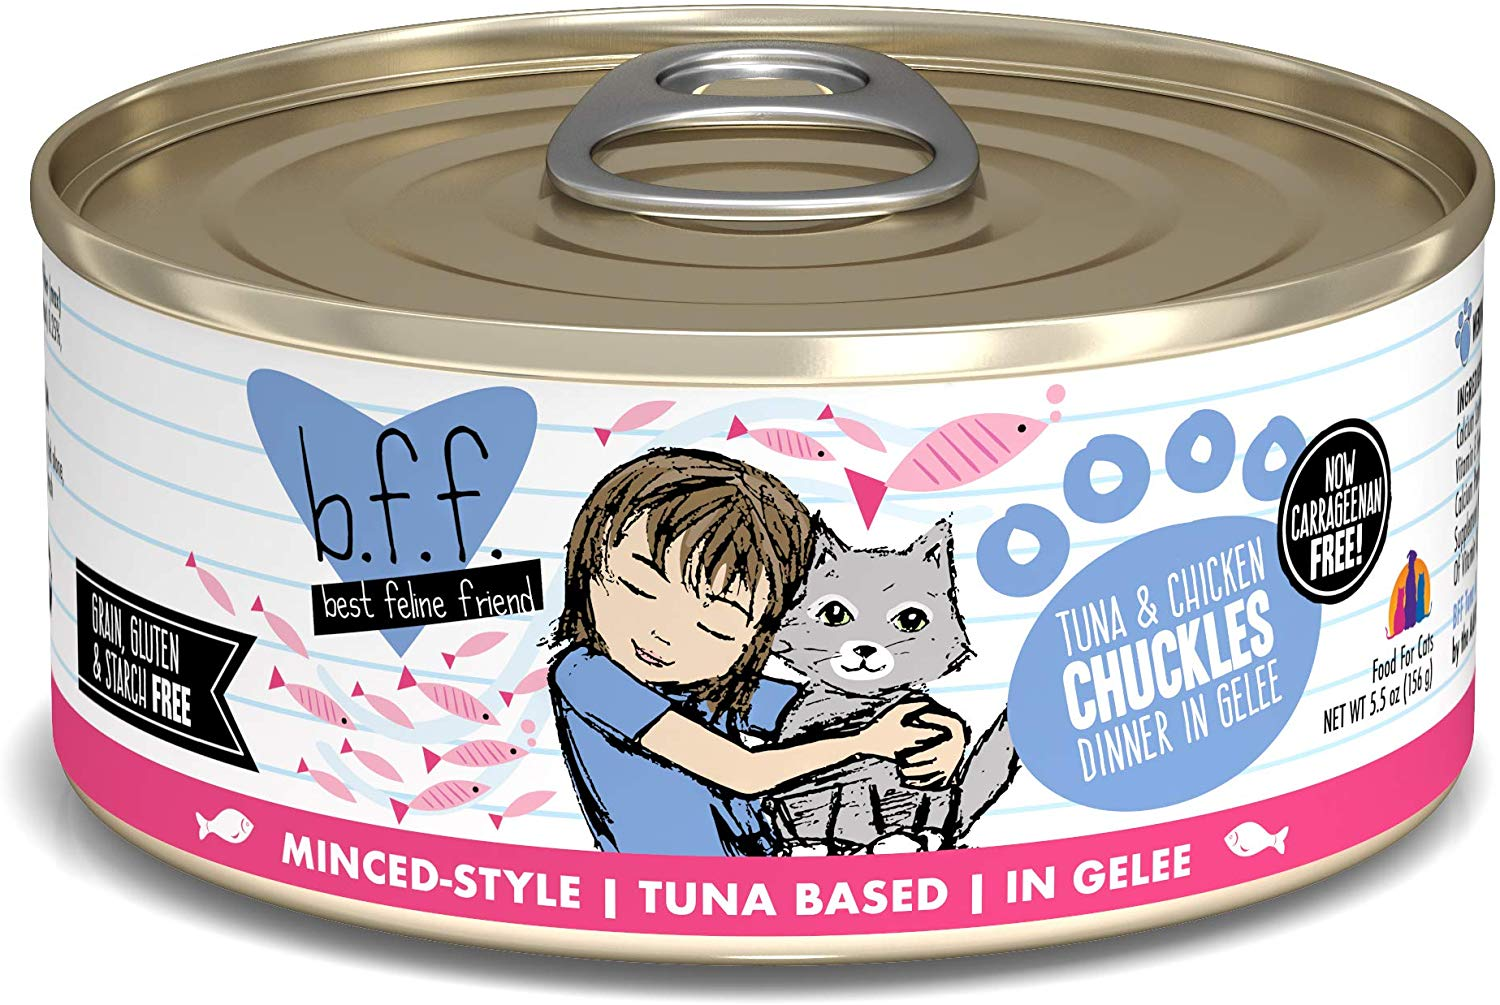 BFF Originals Chuckles Tuna & Chicken Dinner in Gelee Grain-Free Wet Cat Food, 5.5-oz